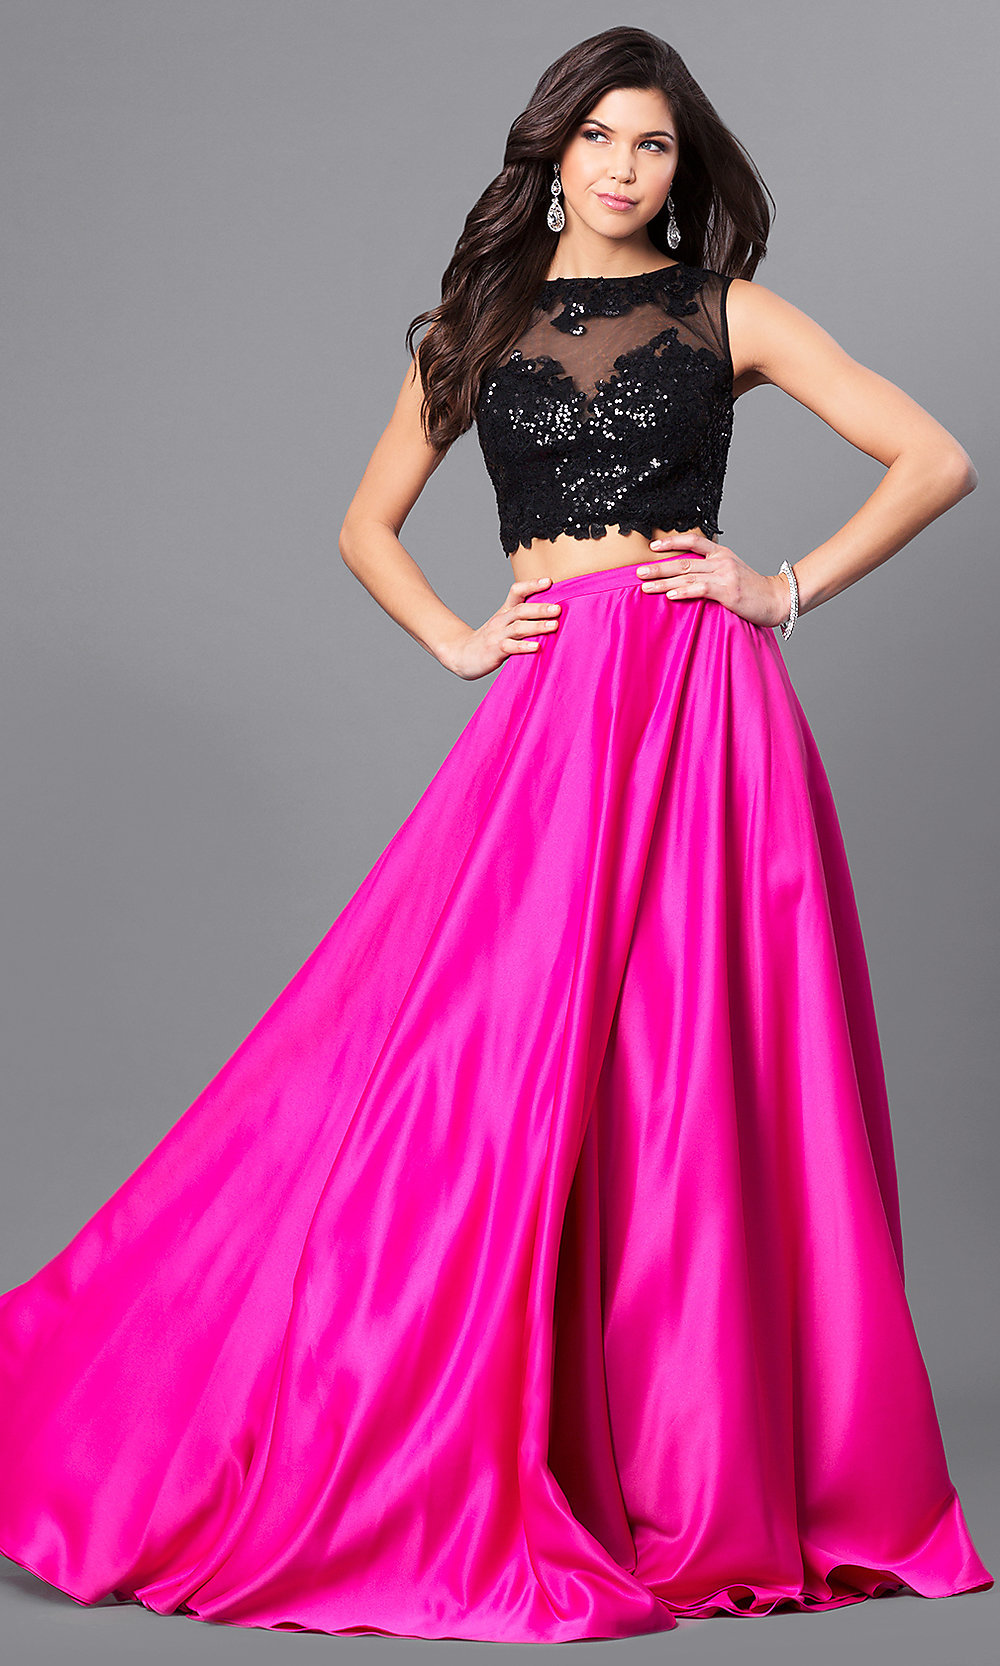 JVNX by Jovani Long Two-Piece Prom Dress - PromGirl